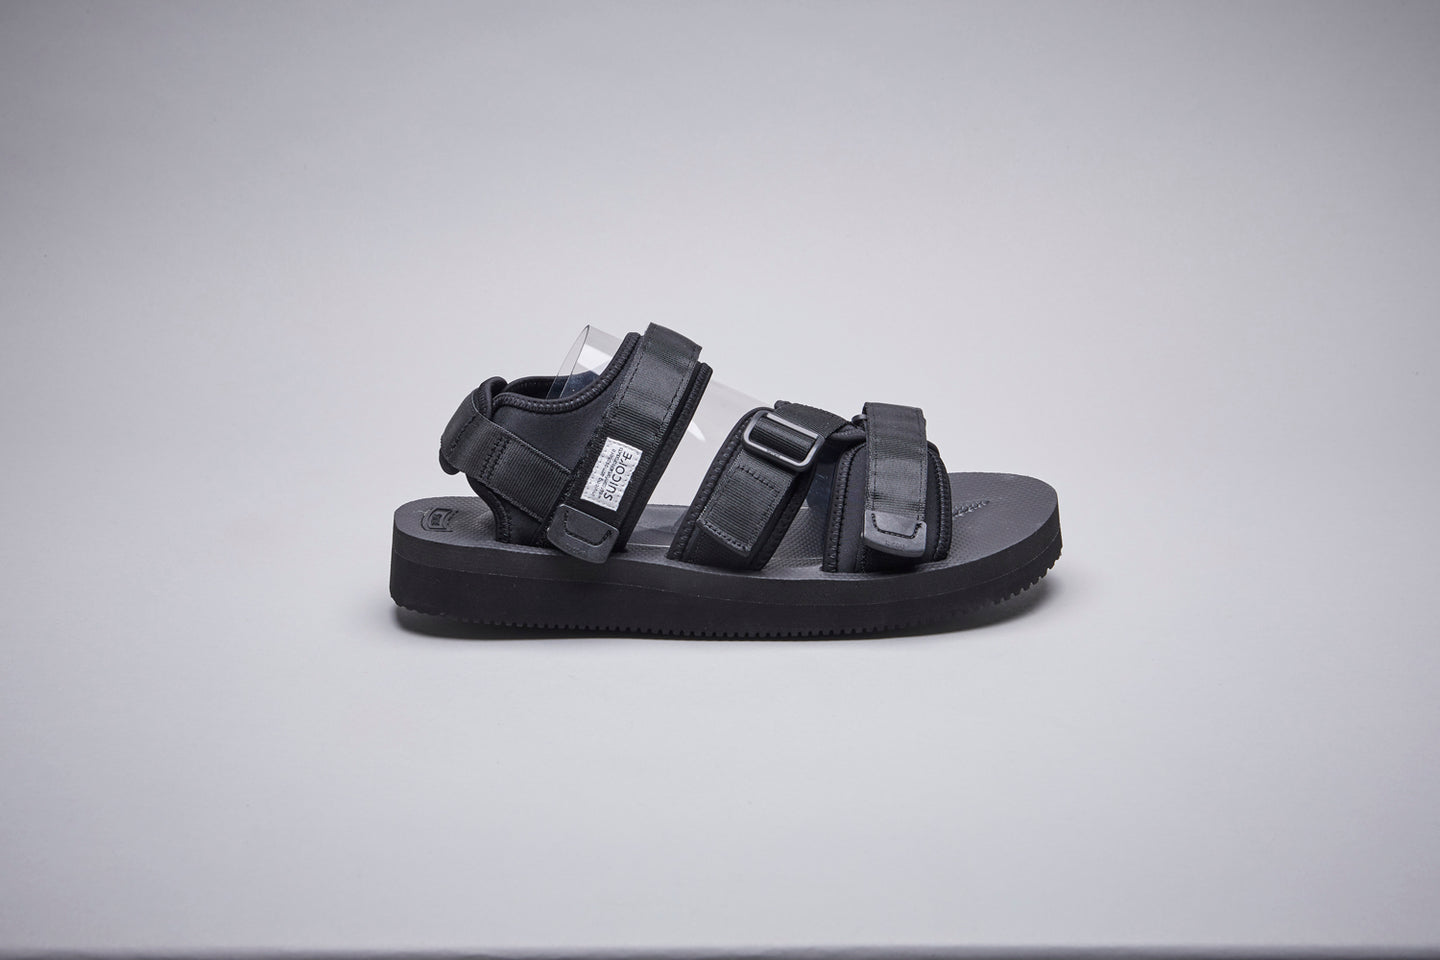 SUICOKE-Sandals-KISEE-V - Black-OG-044V Official Webstore Spring 2021